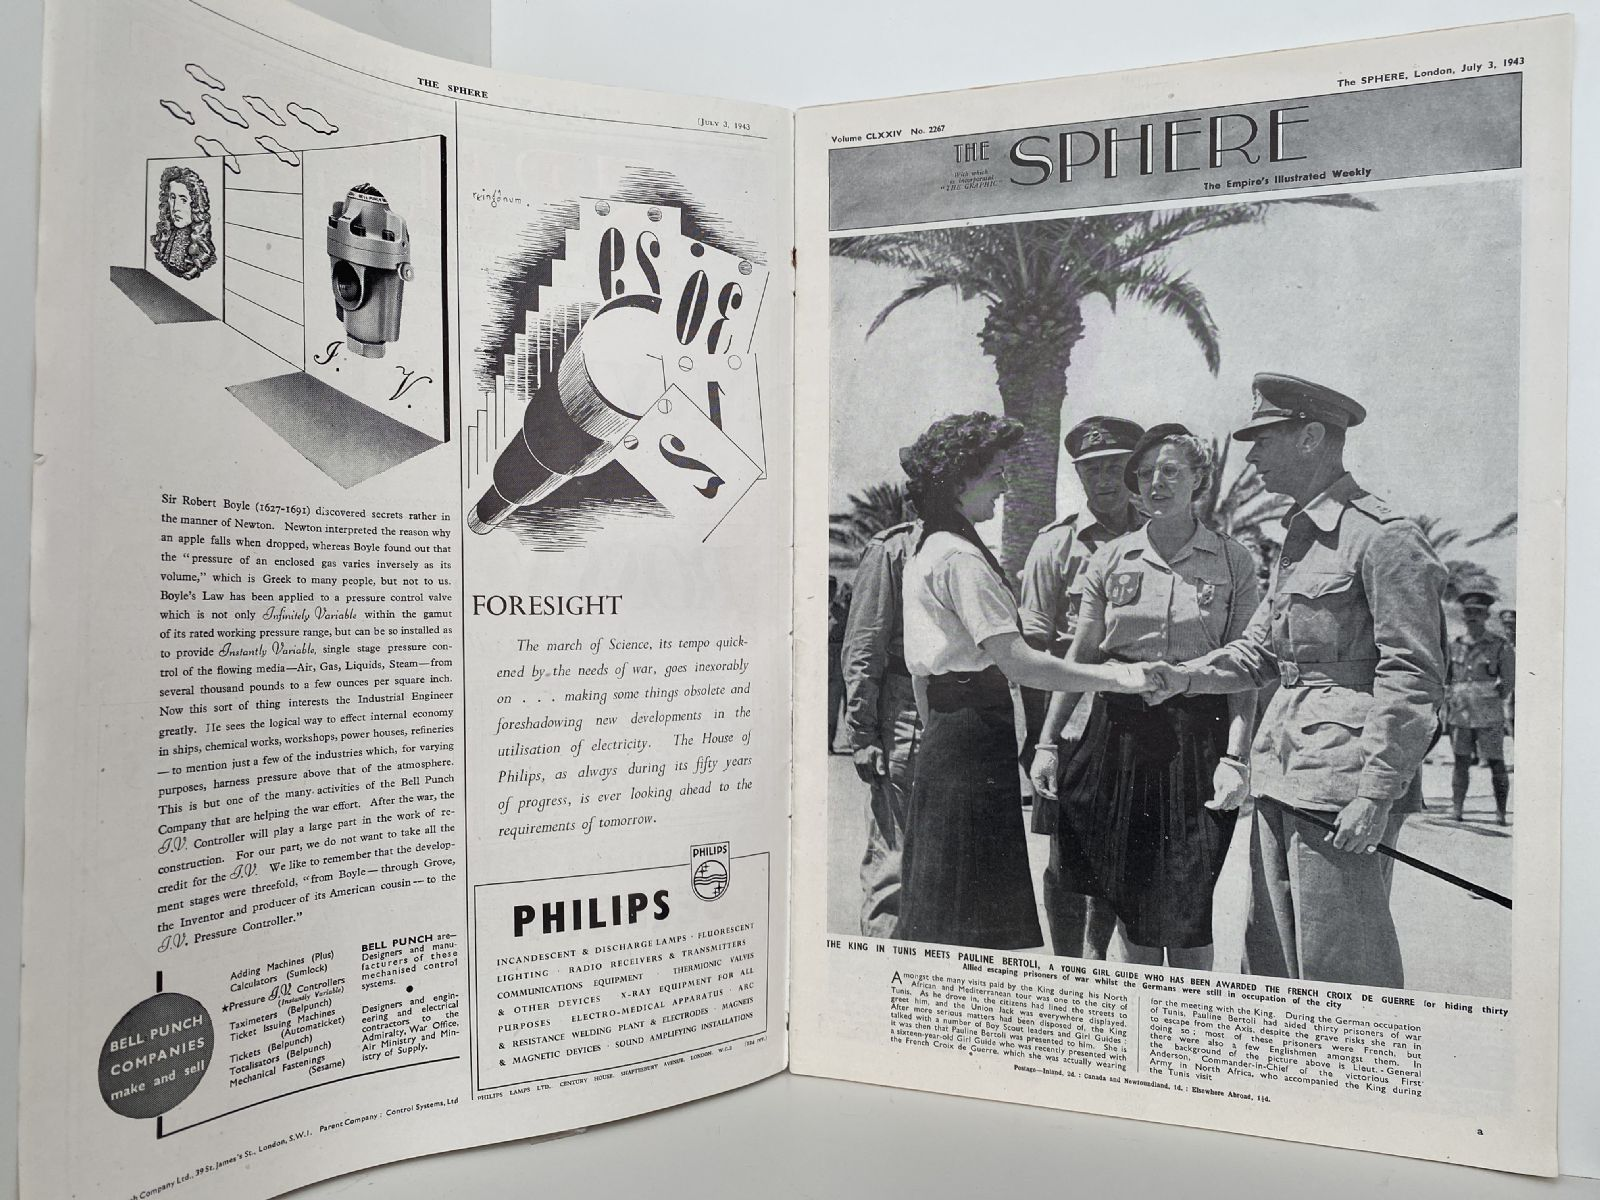 THE SPHERE The Empire's Illustrated Weekly. July 3, 1943. No. 2267